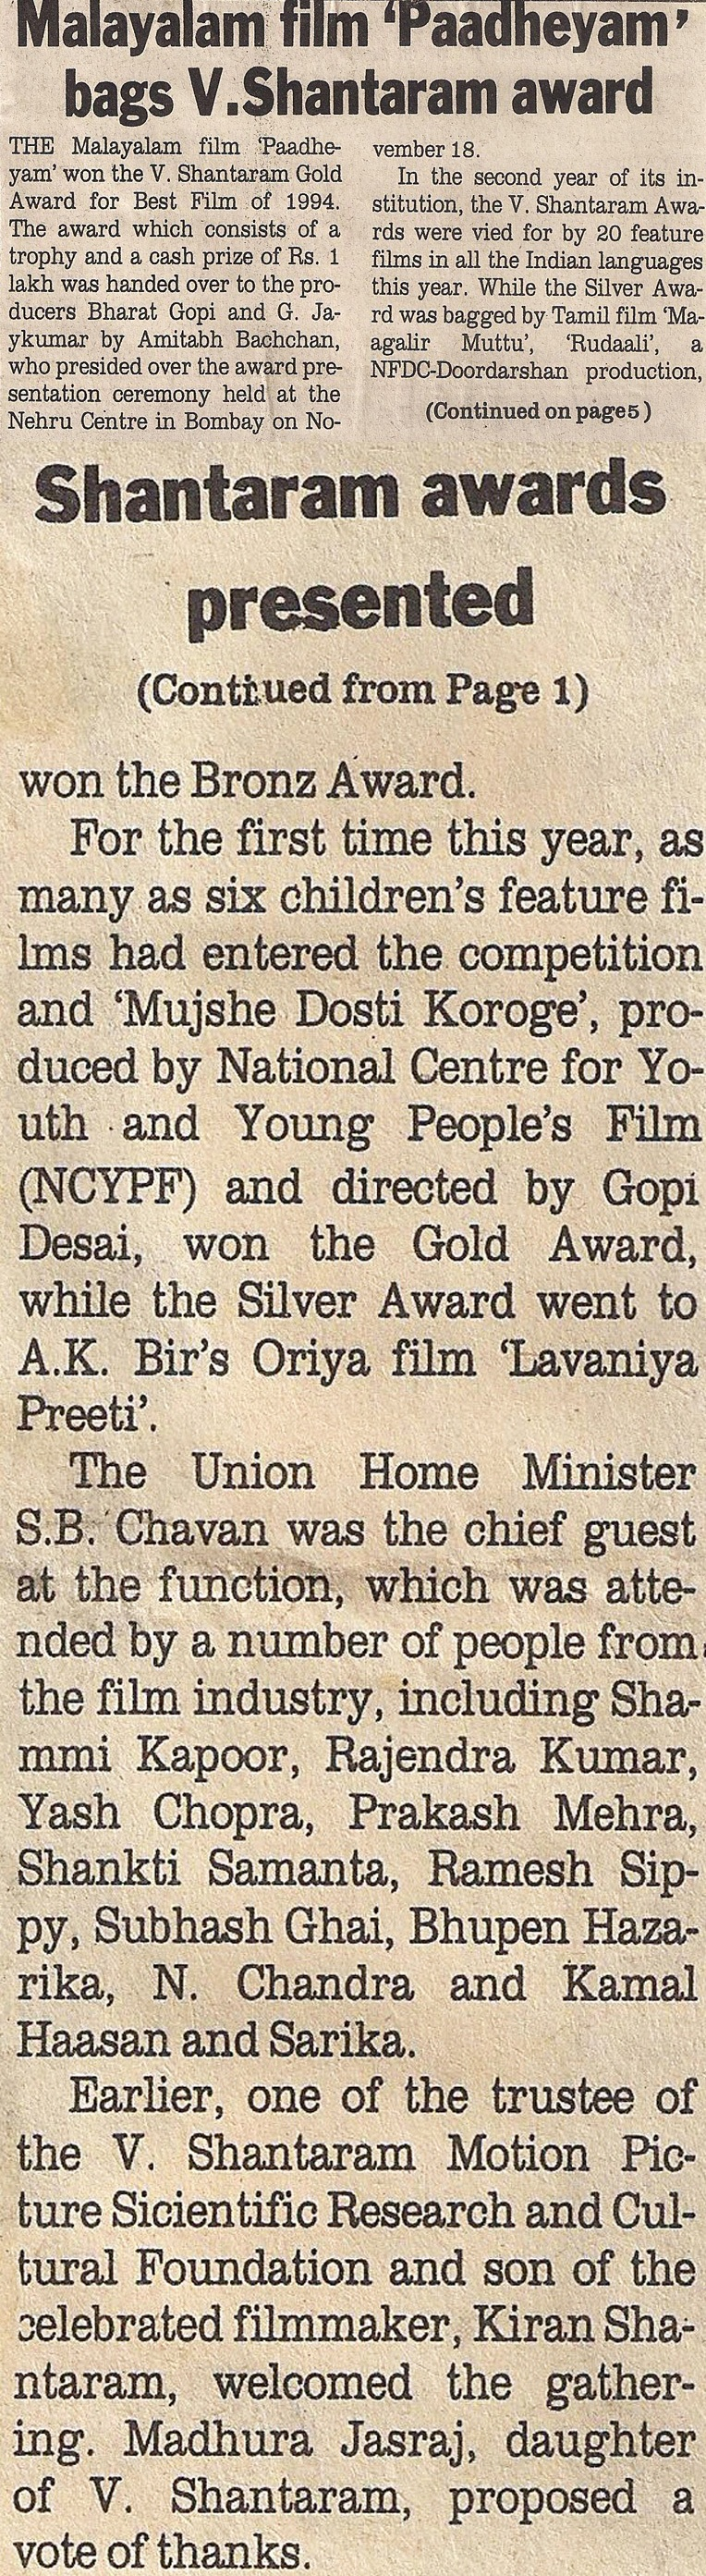 Press announcement of the V Shantaram Gold Award for Paadheyam(1993)